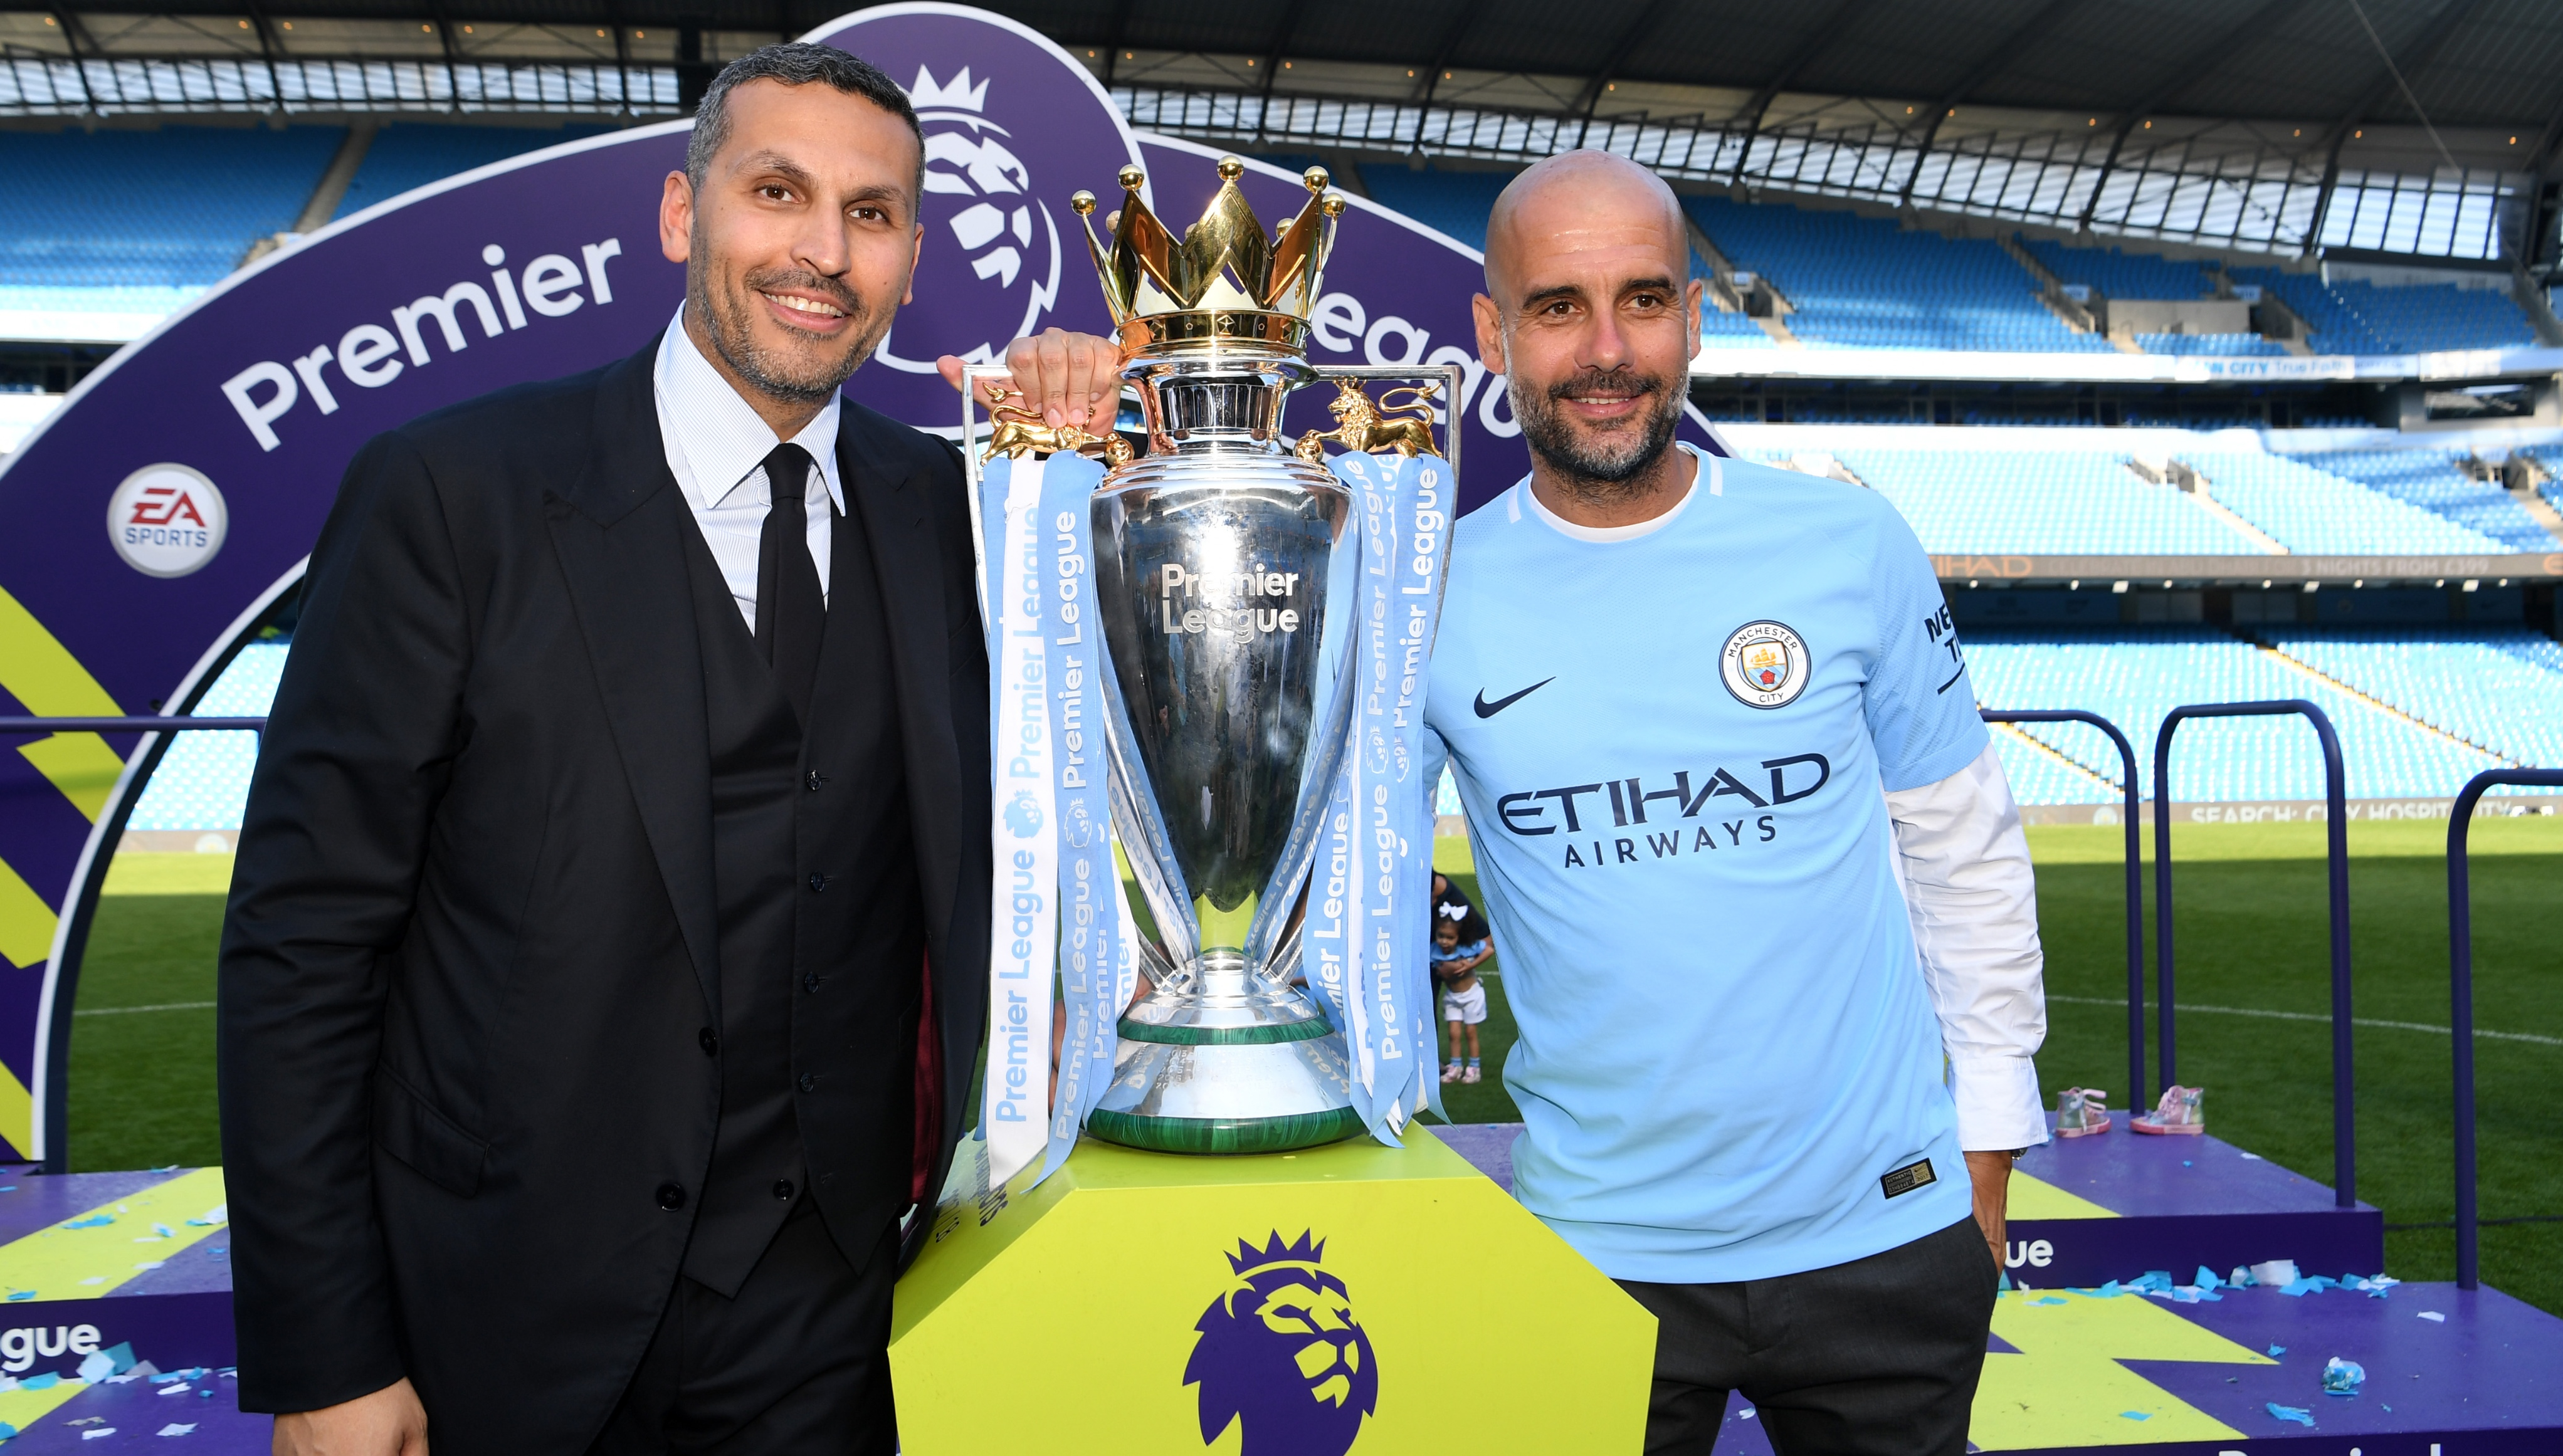 Manchester City Should Win The Champions League Within Next 10 Years According To Chairman Khaldoon Al Mubarak